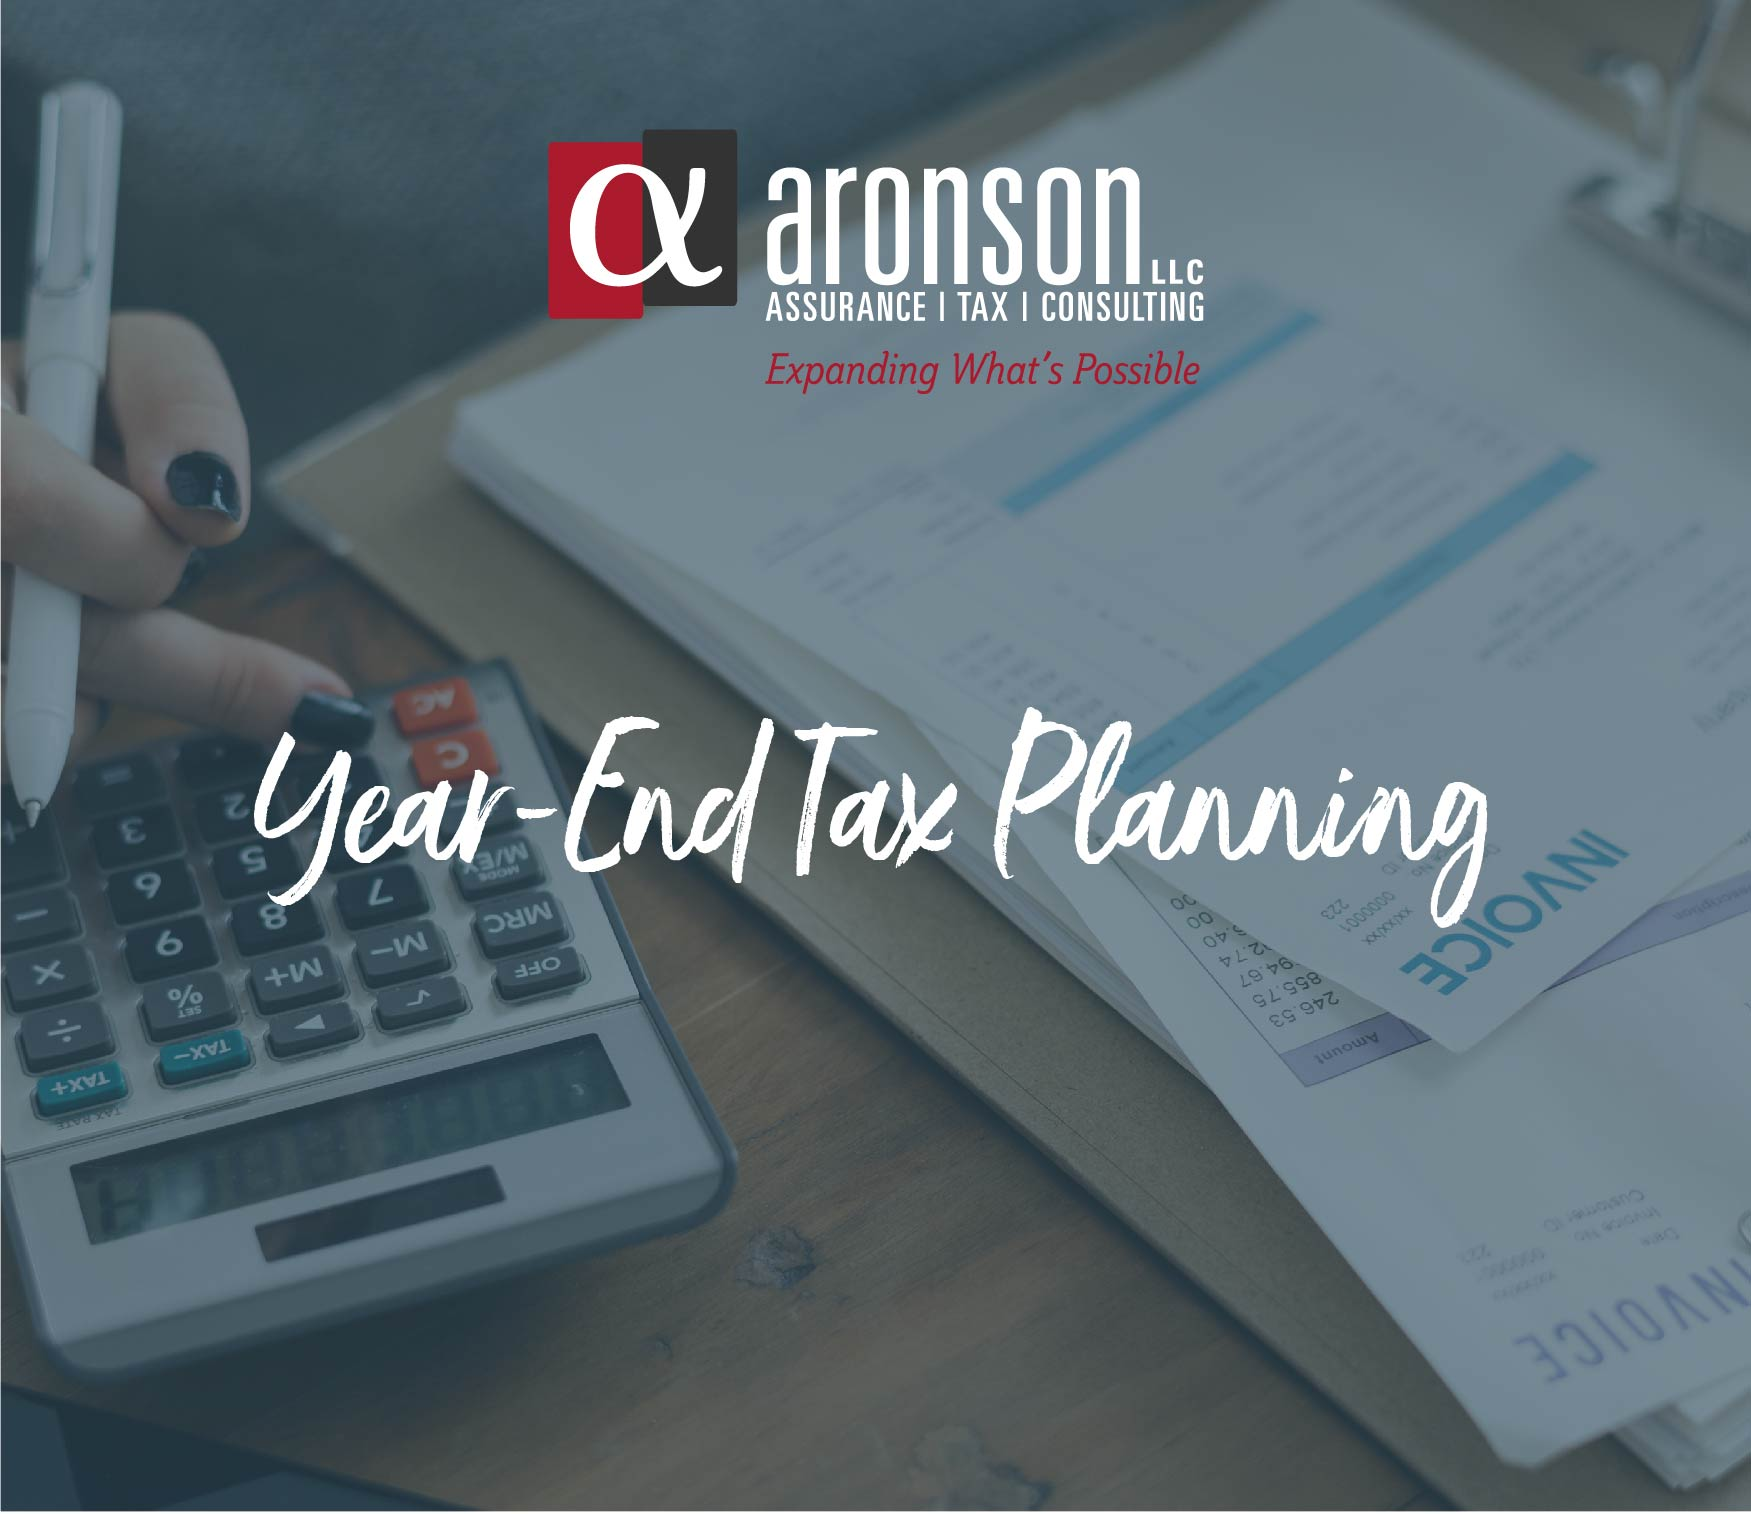 Significant 2018 Year-End Tax Planning Opportunities For